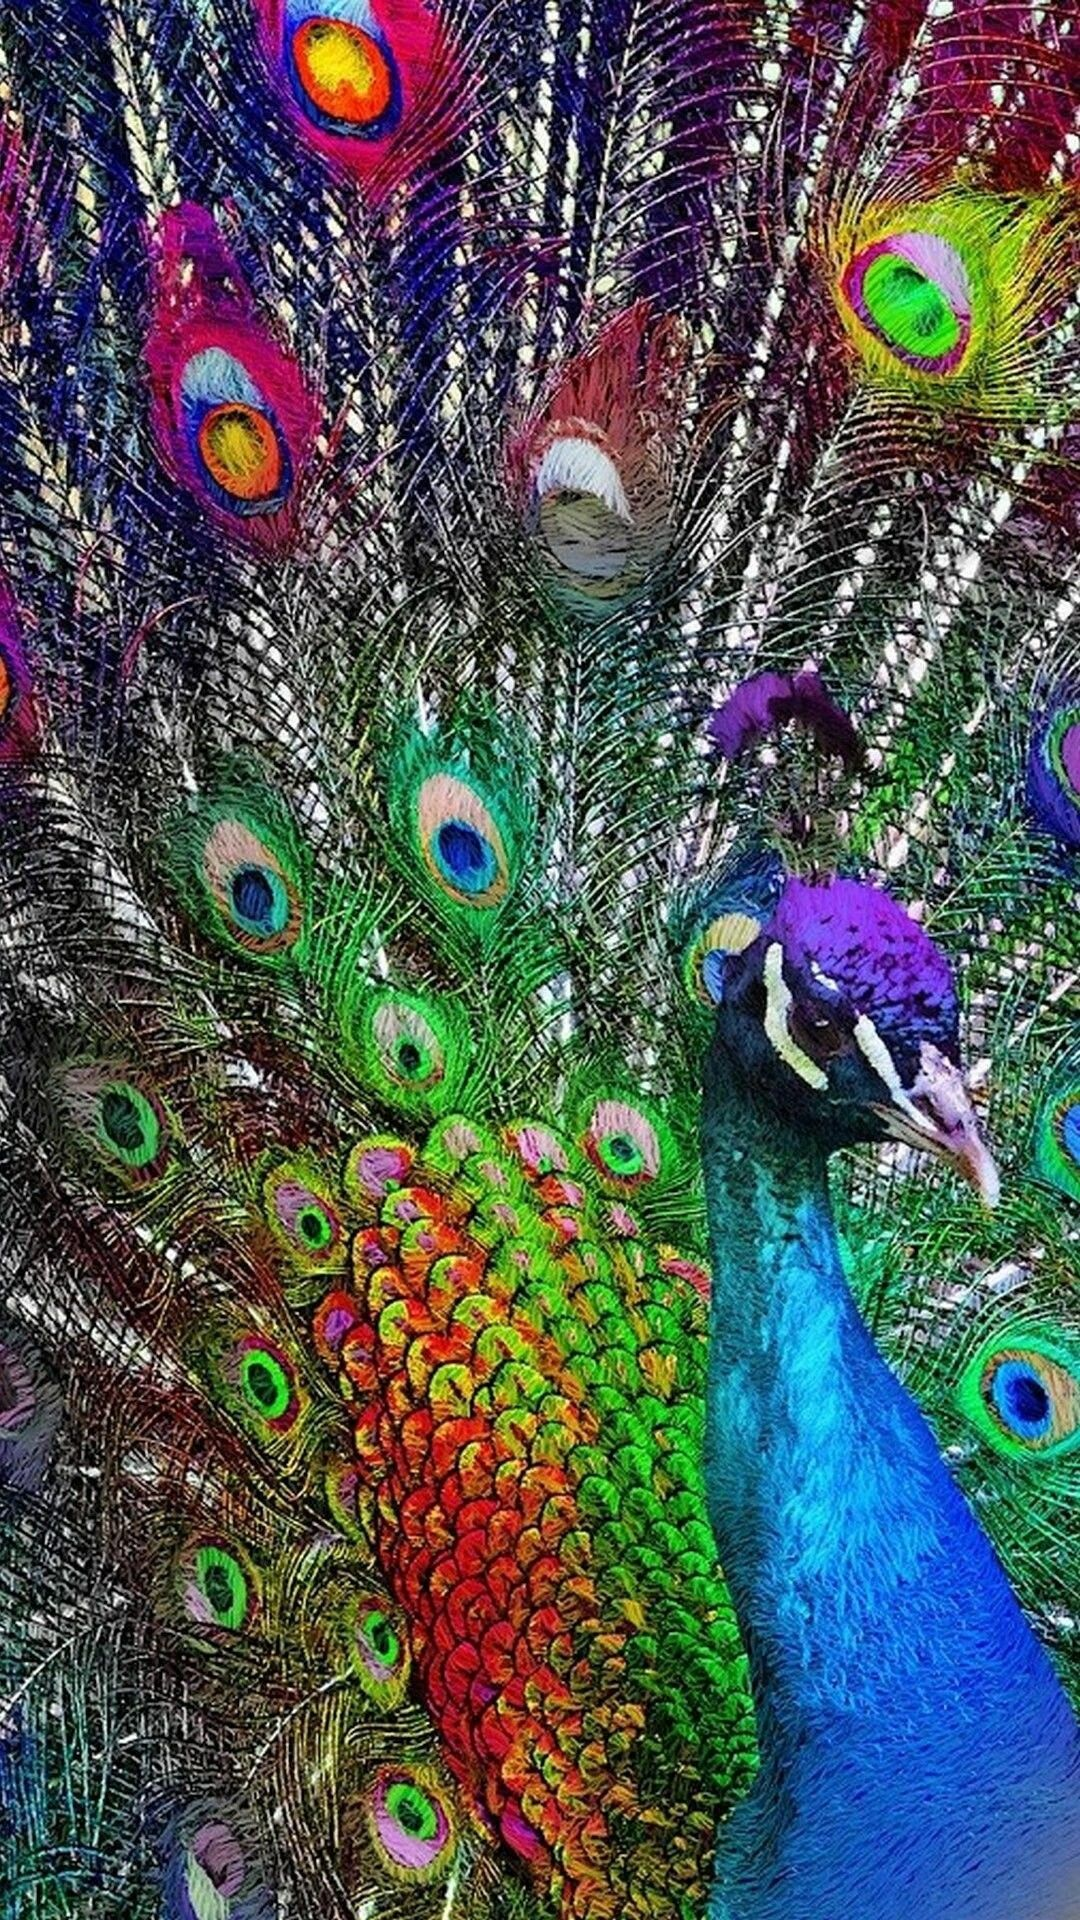 Pin by તારક પટેલ પટેલ on Wallpaper Peacock wallpaper